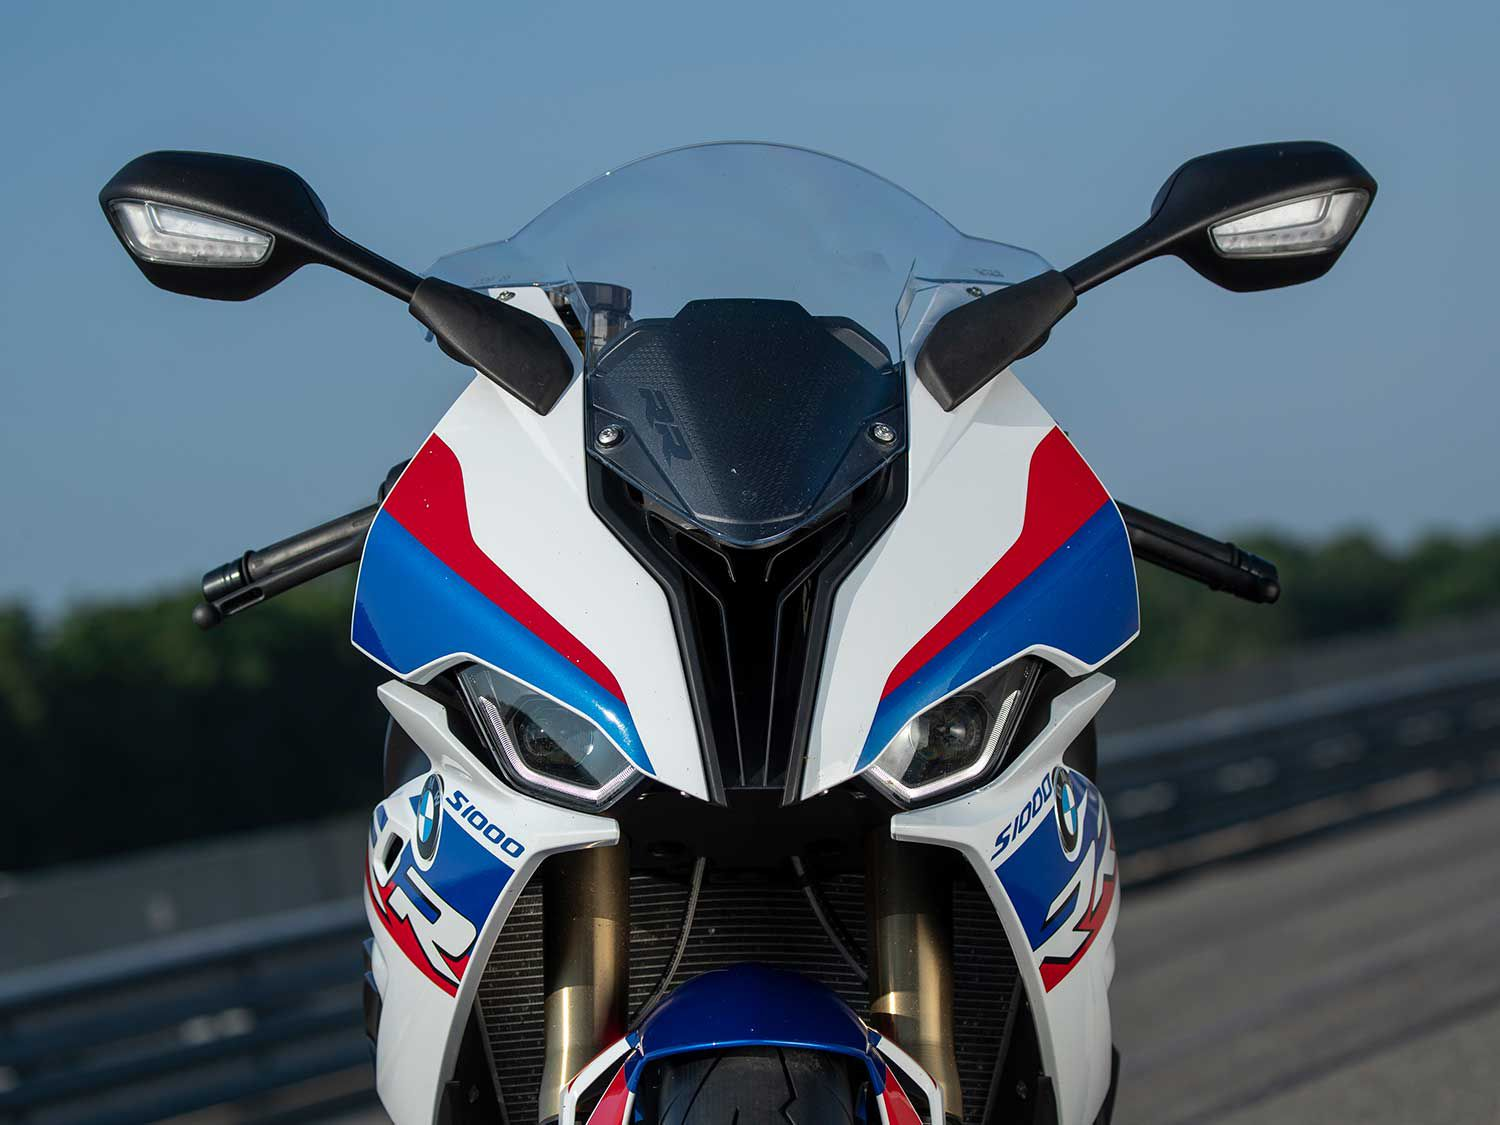 "BMW engineers nailed the styling of the 2020 S 1000 RR. We appreciate its symmetrical face that features styling cues from its predecessor. <a href=""https://www.motorcyclistonline.com/2020-bmw-s-1000-rr-first-ride-review/"">Read the full review »</a>"